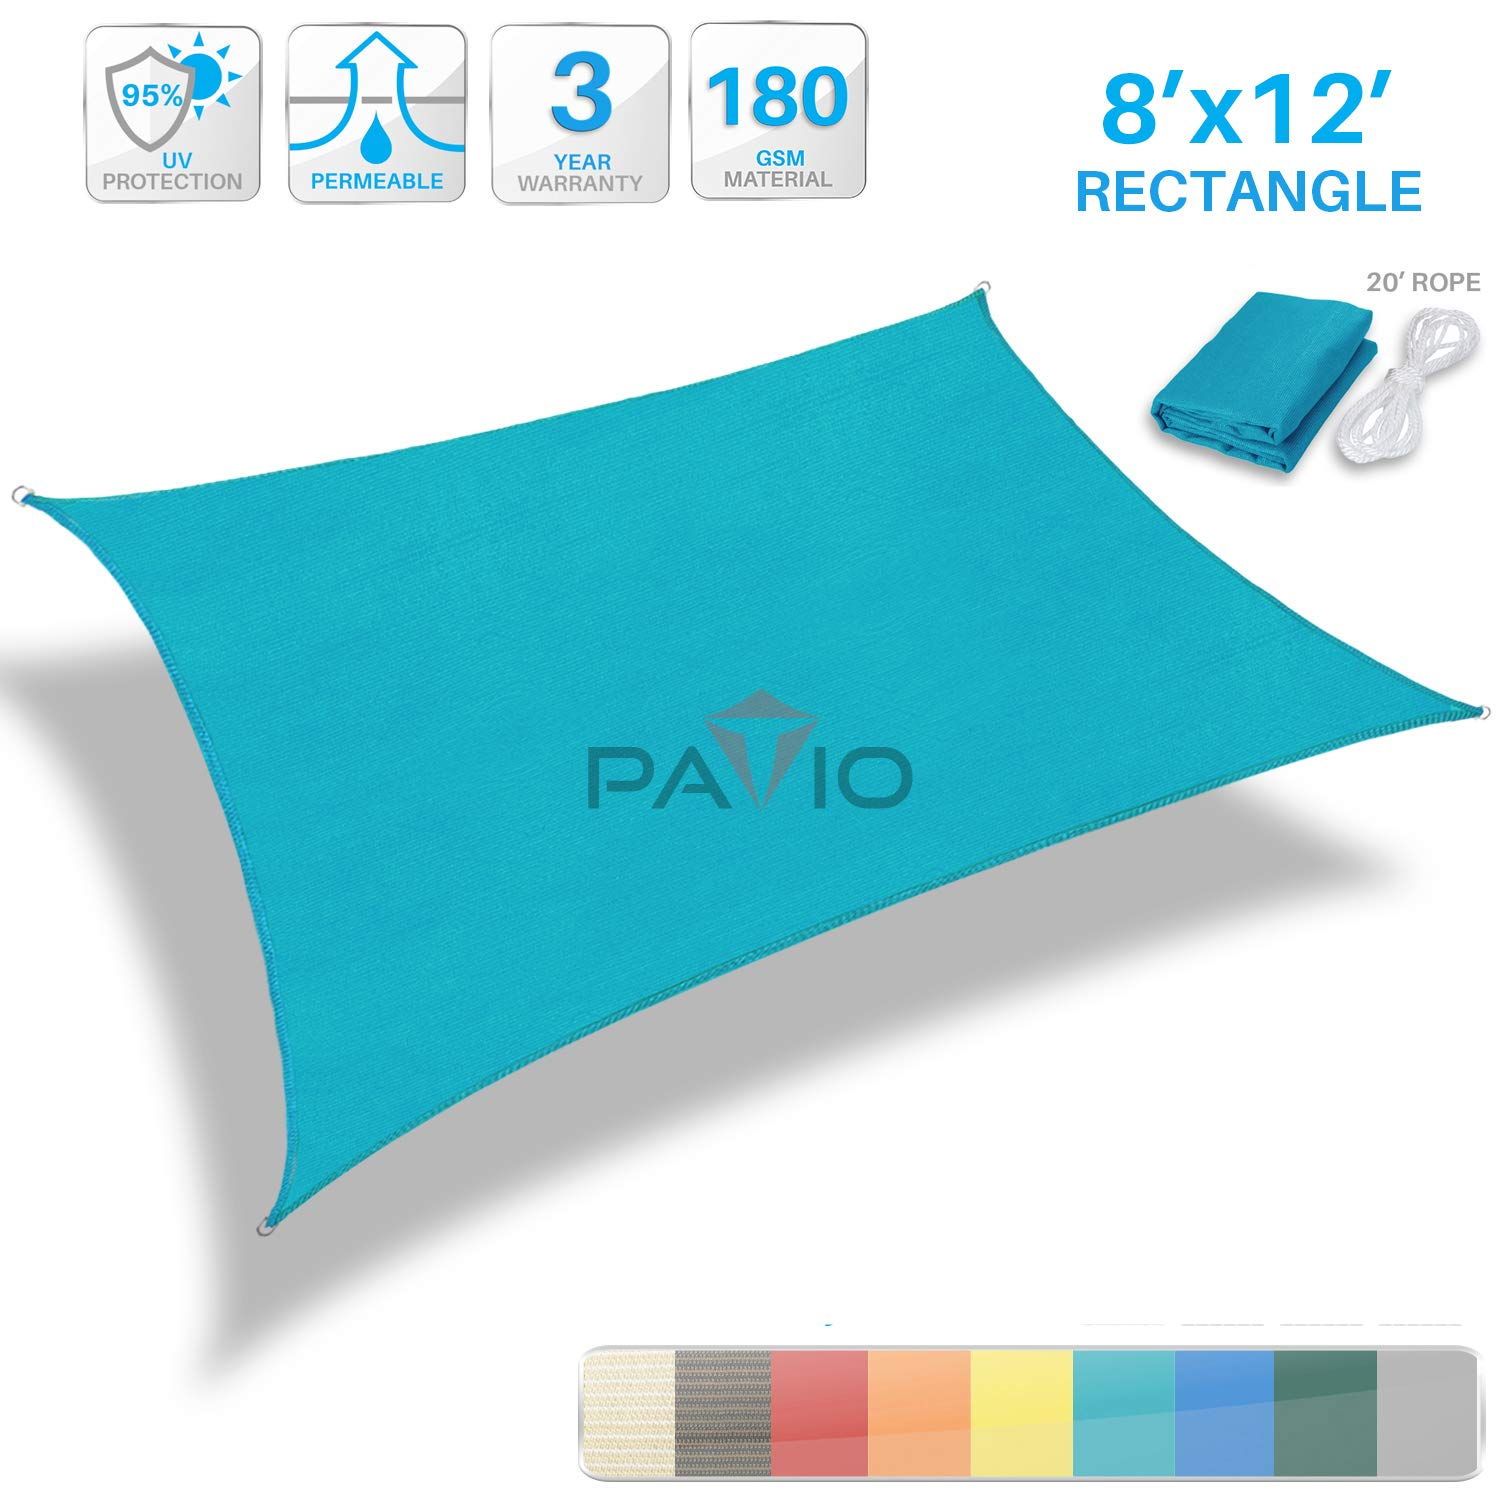 Patio Paradise 8' x 12' Solid Turquoise Green Sun Shade Sail Rectangle Square Canopy - Permeable UV Block Fabric Durable Outdoor - Customized Available by Patio